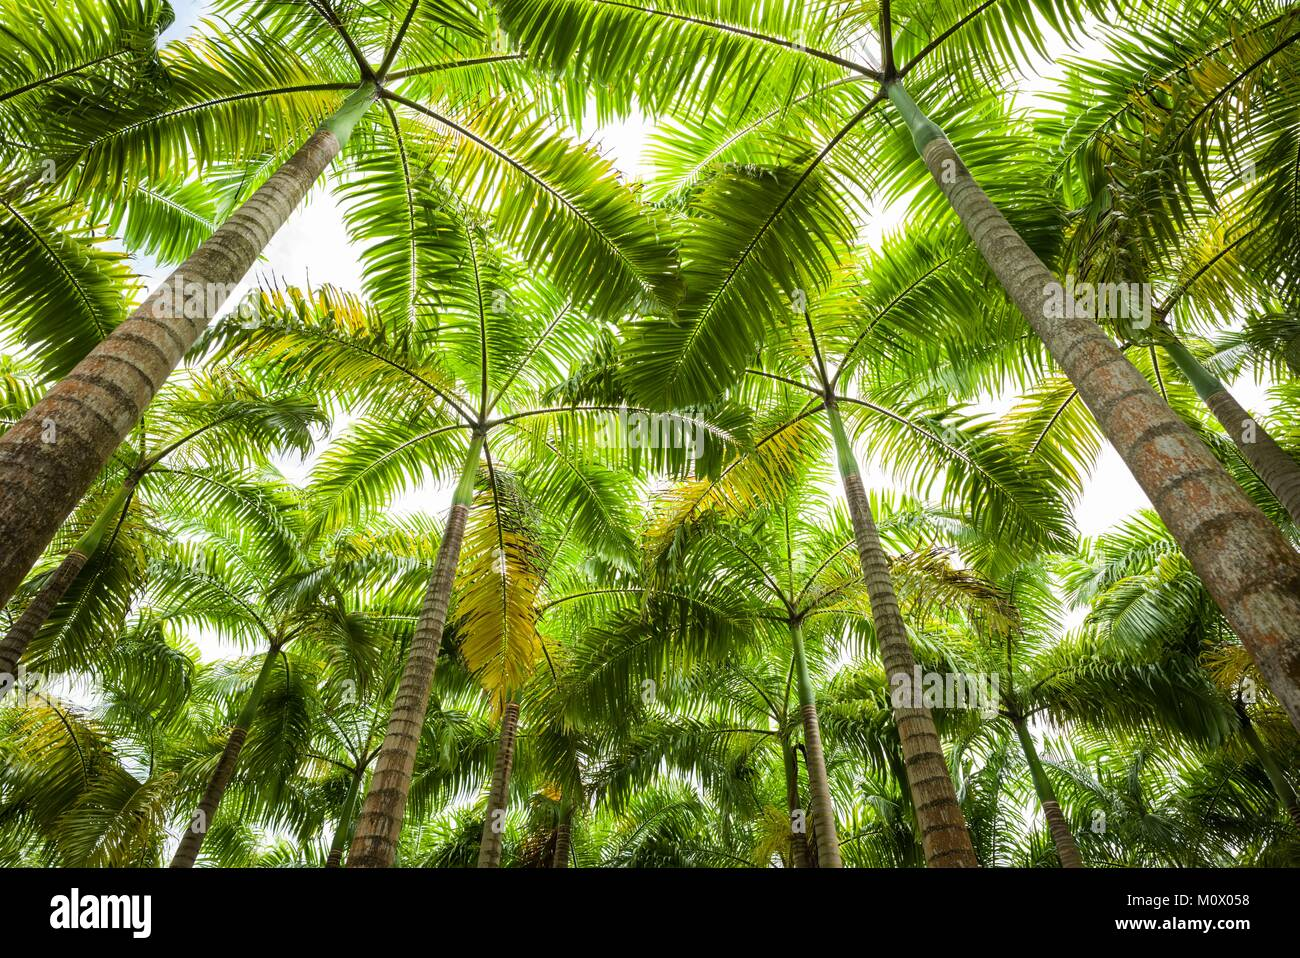 St. Kitts and Nevis,St. Kitts,Molineux,palm tree - Stock Image